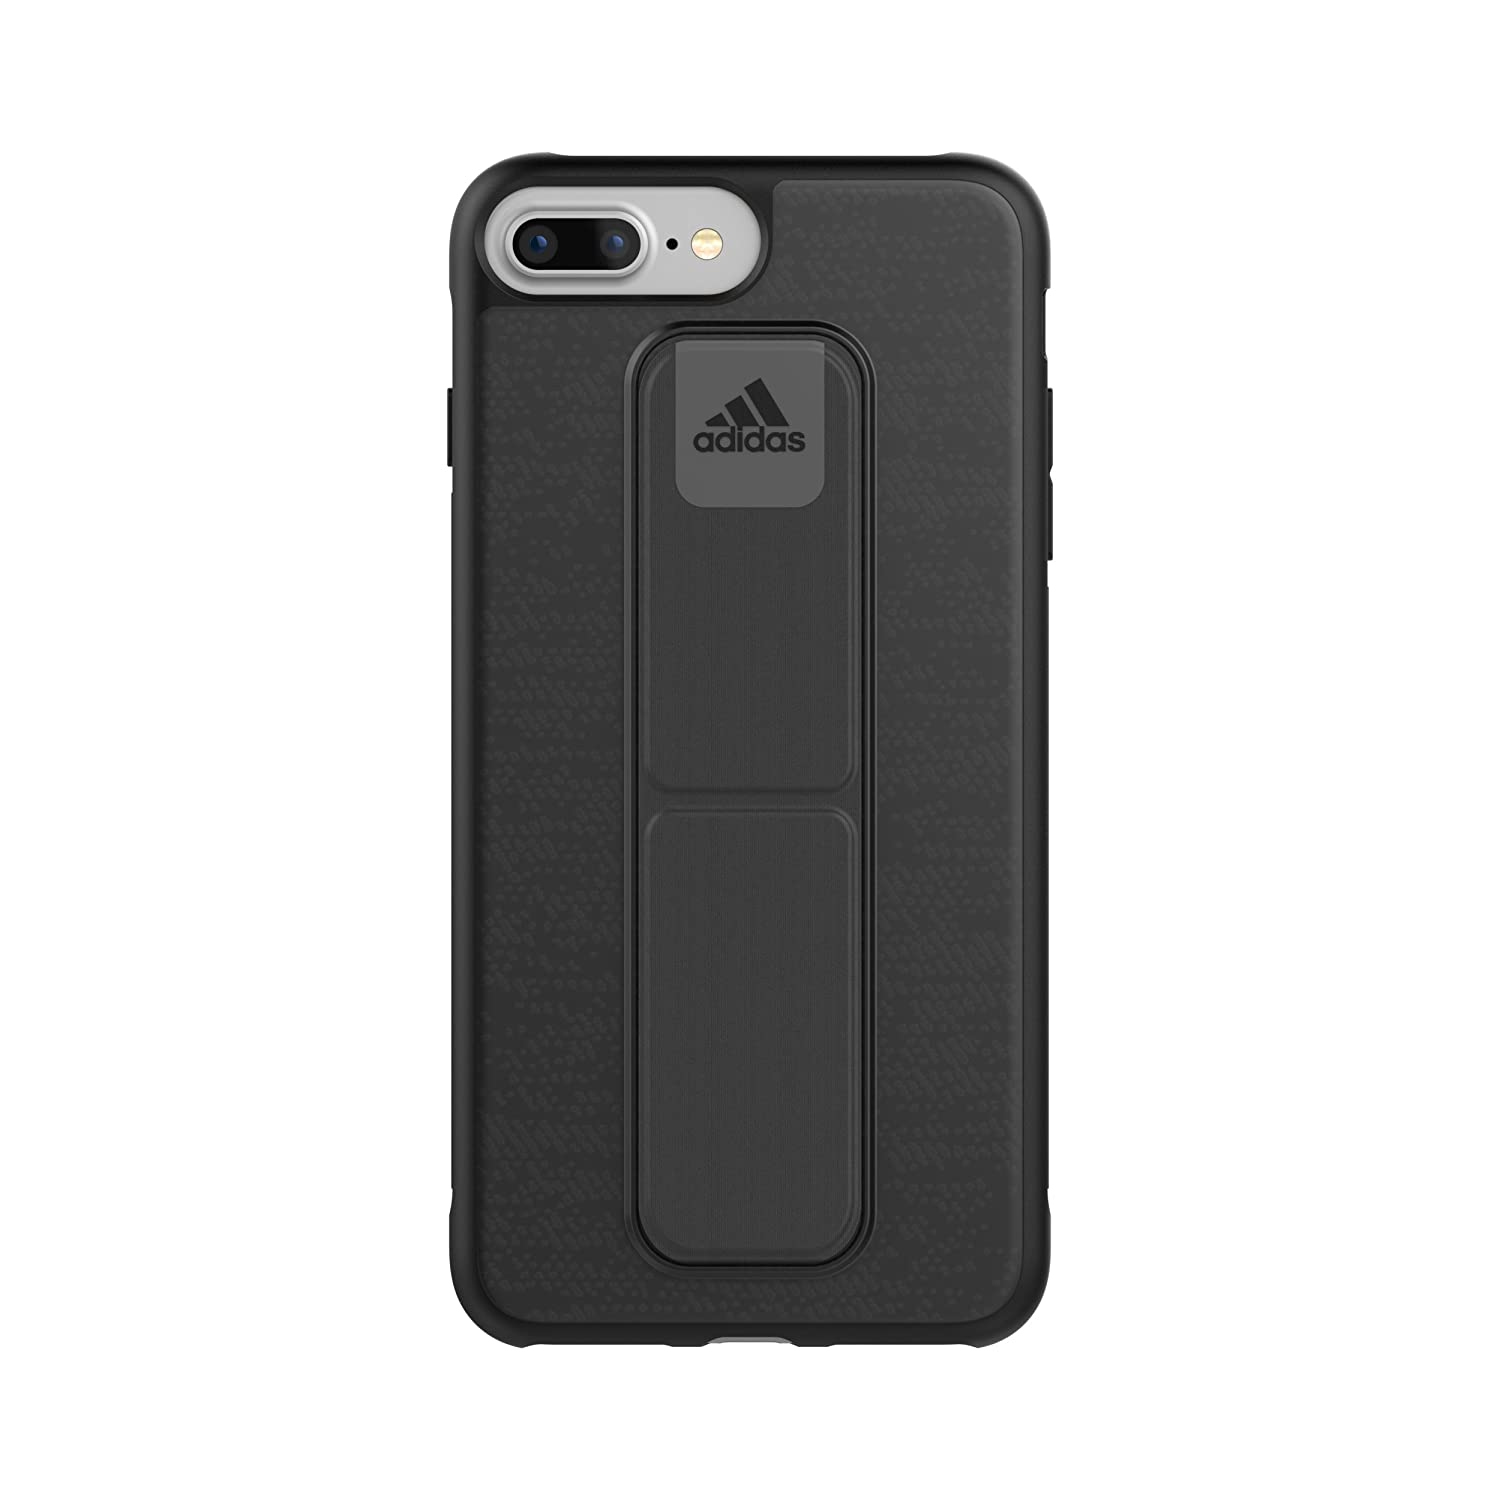 adidas 29592 Carcasa para Apple iPhone 6 Plus/6S Plus/7 Plus ...